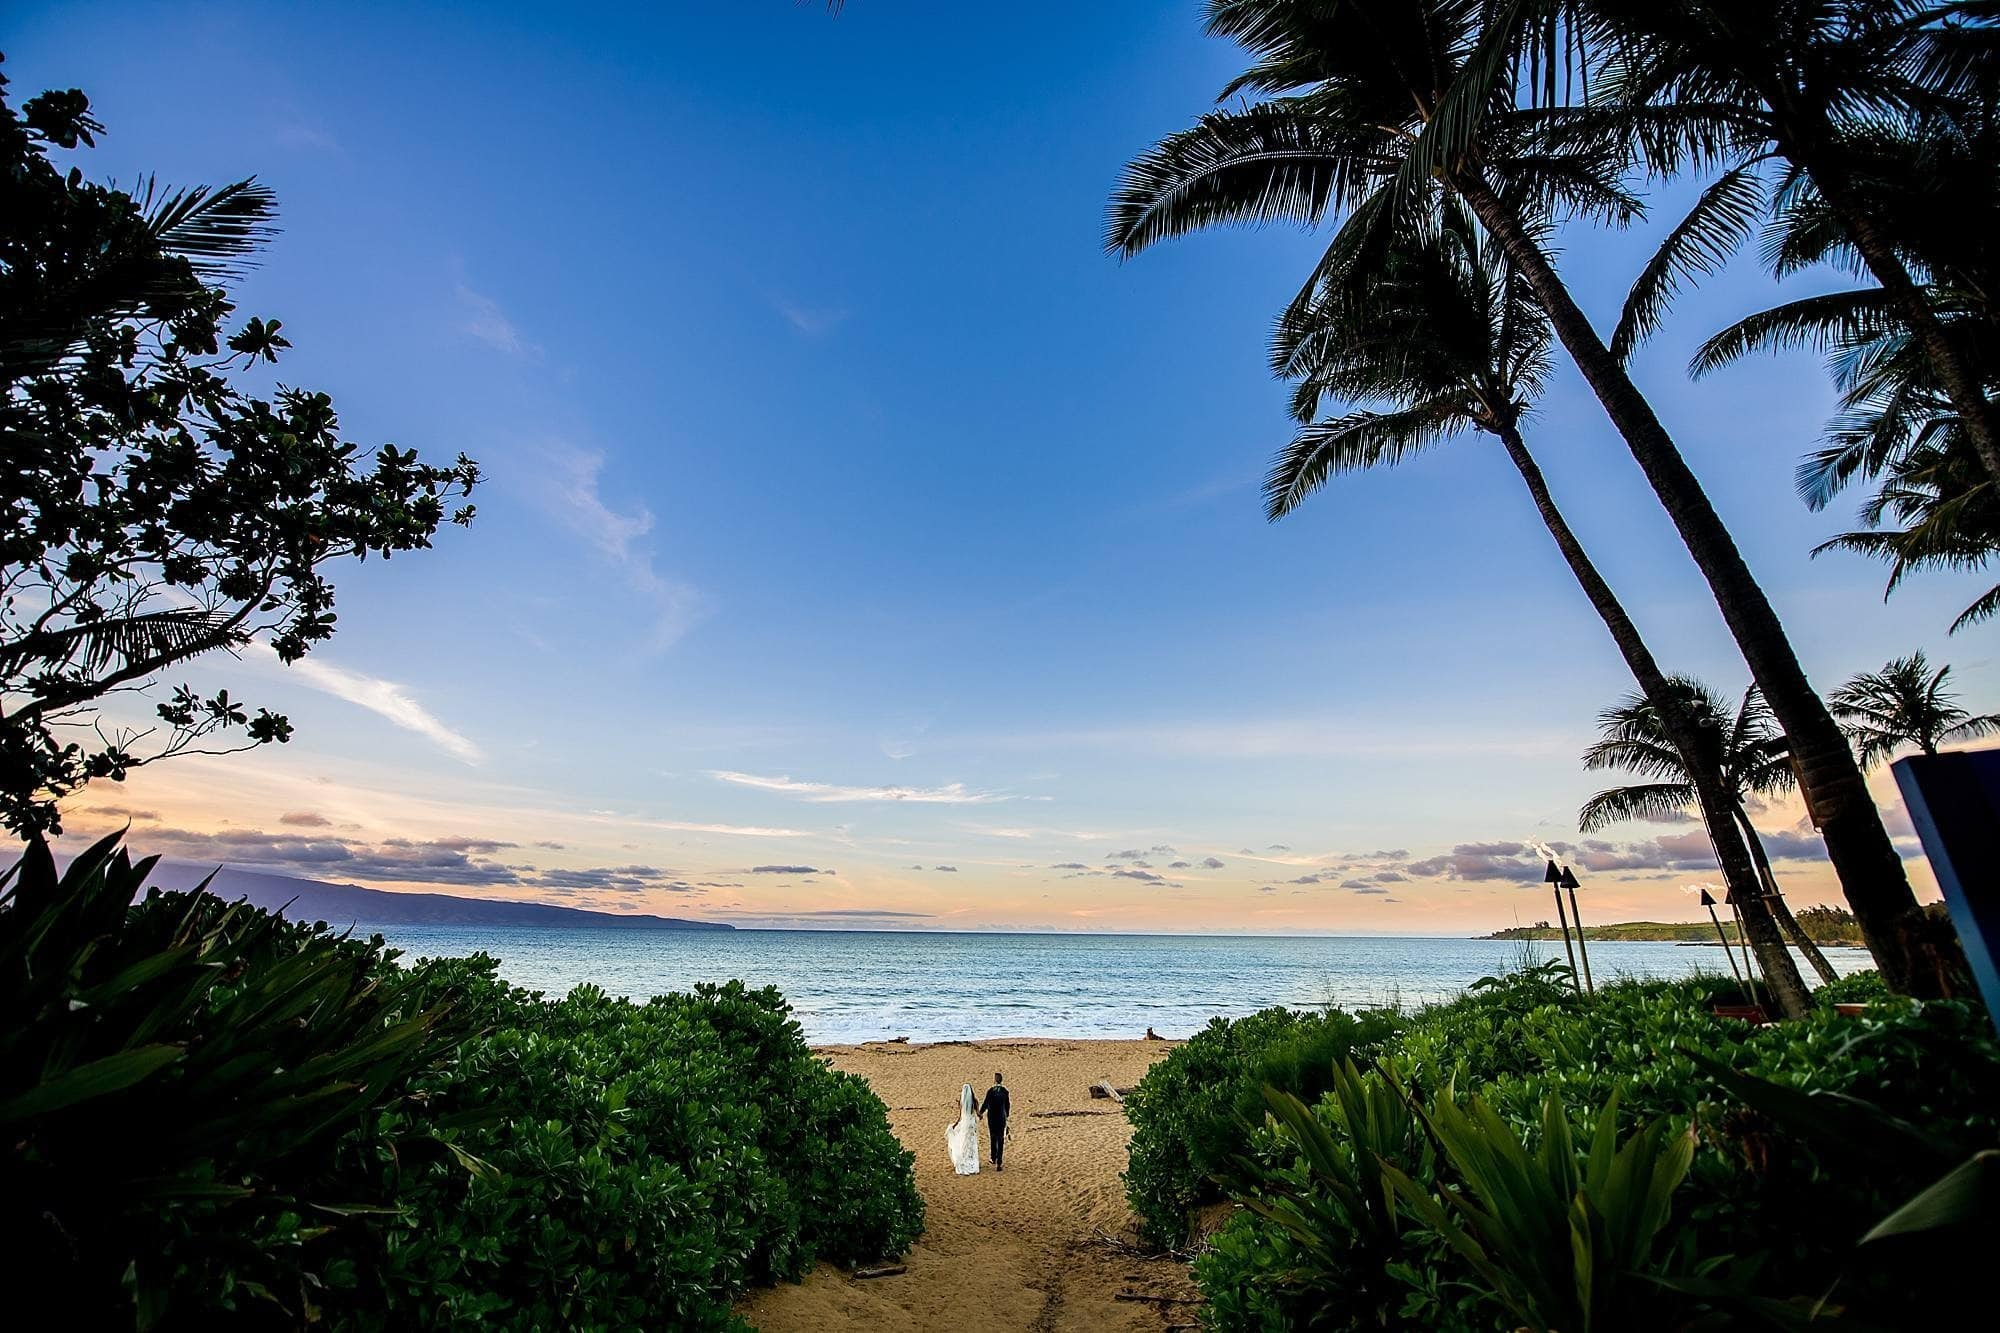 bride and groom on beach in maui